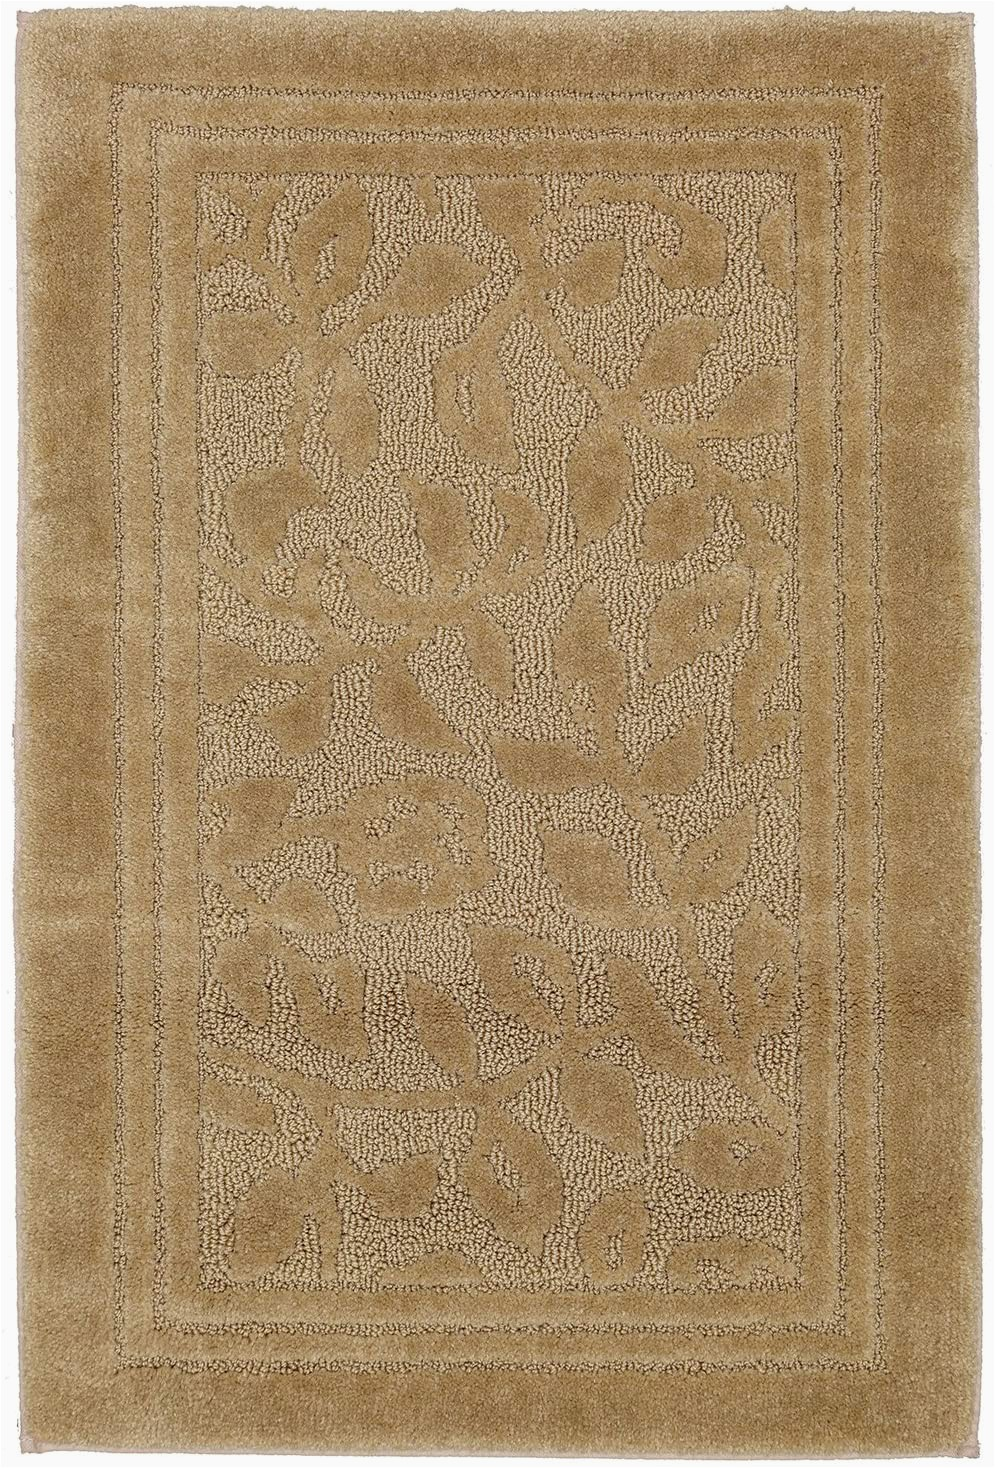 Mohawk Home Wellington Bath Rug Mohawk Home Wellington Deep Sand Bath Rug 2 X5 2 0 X 5 0